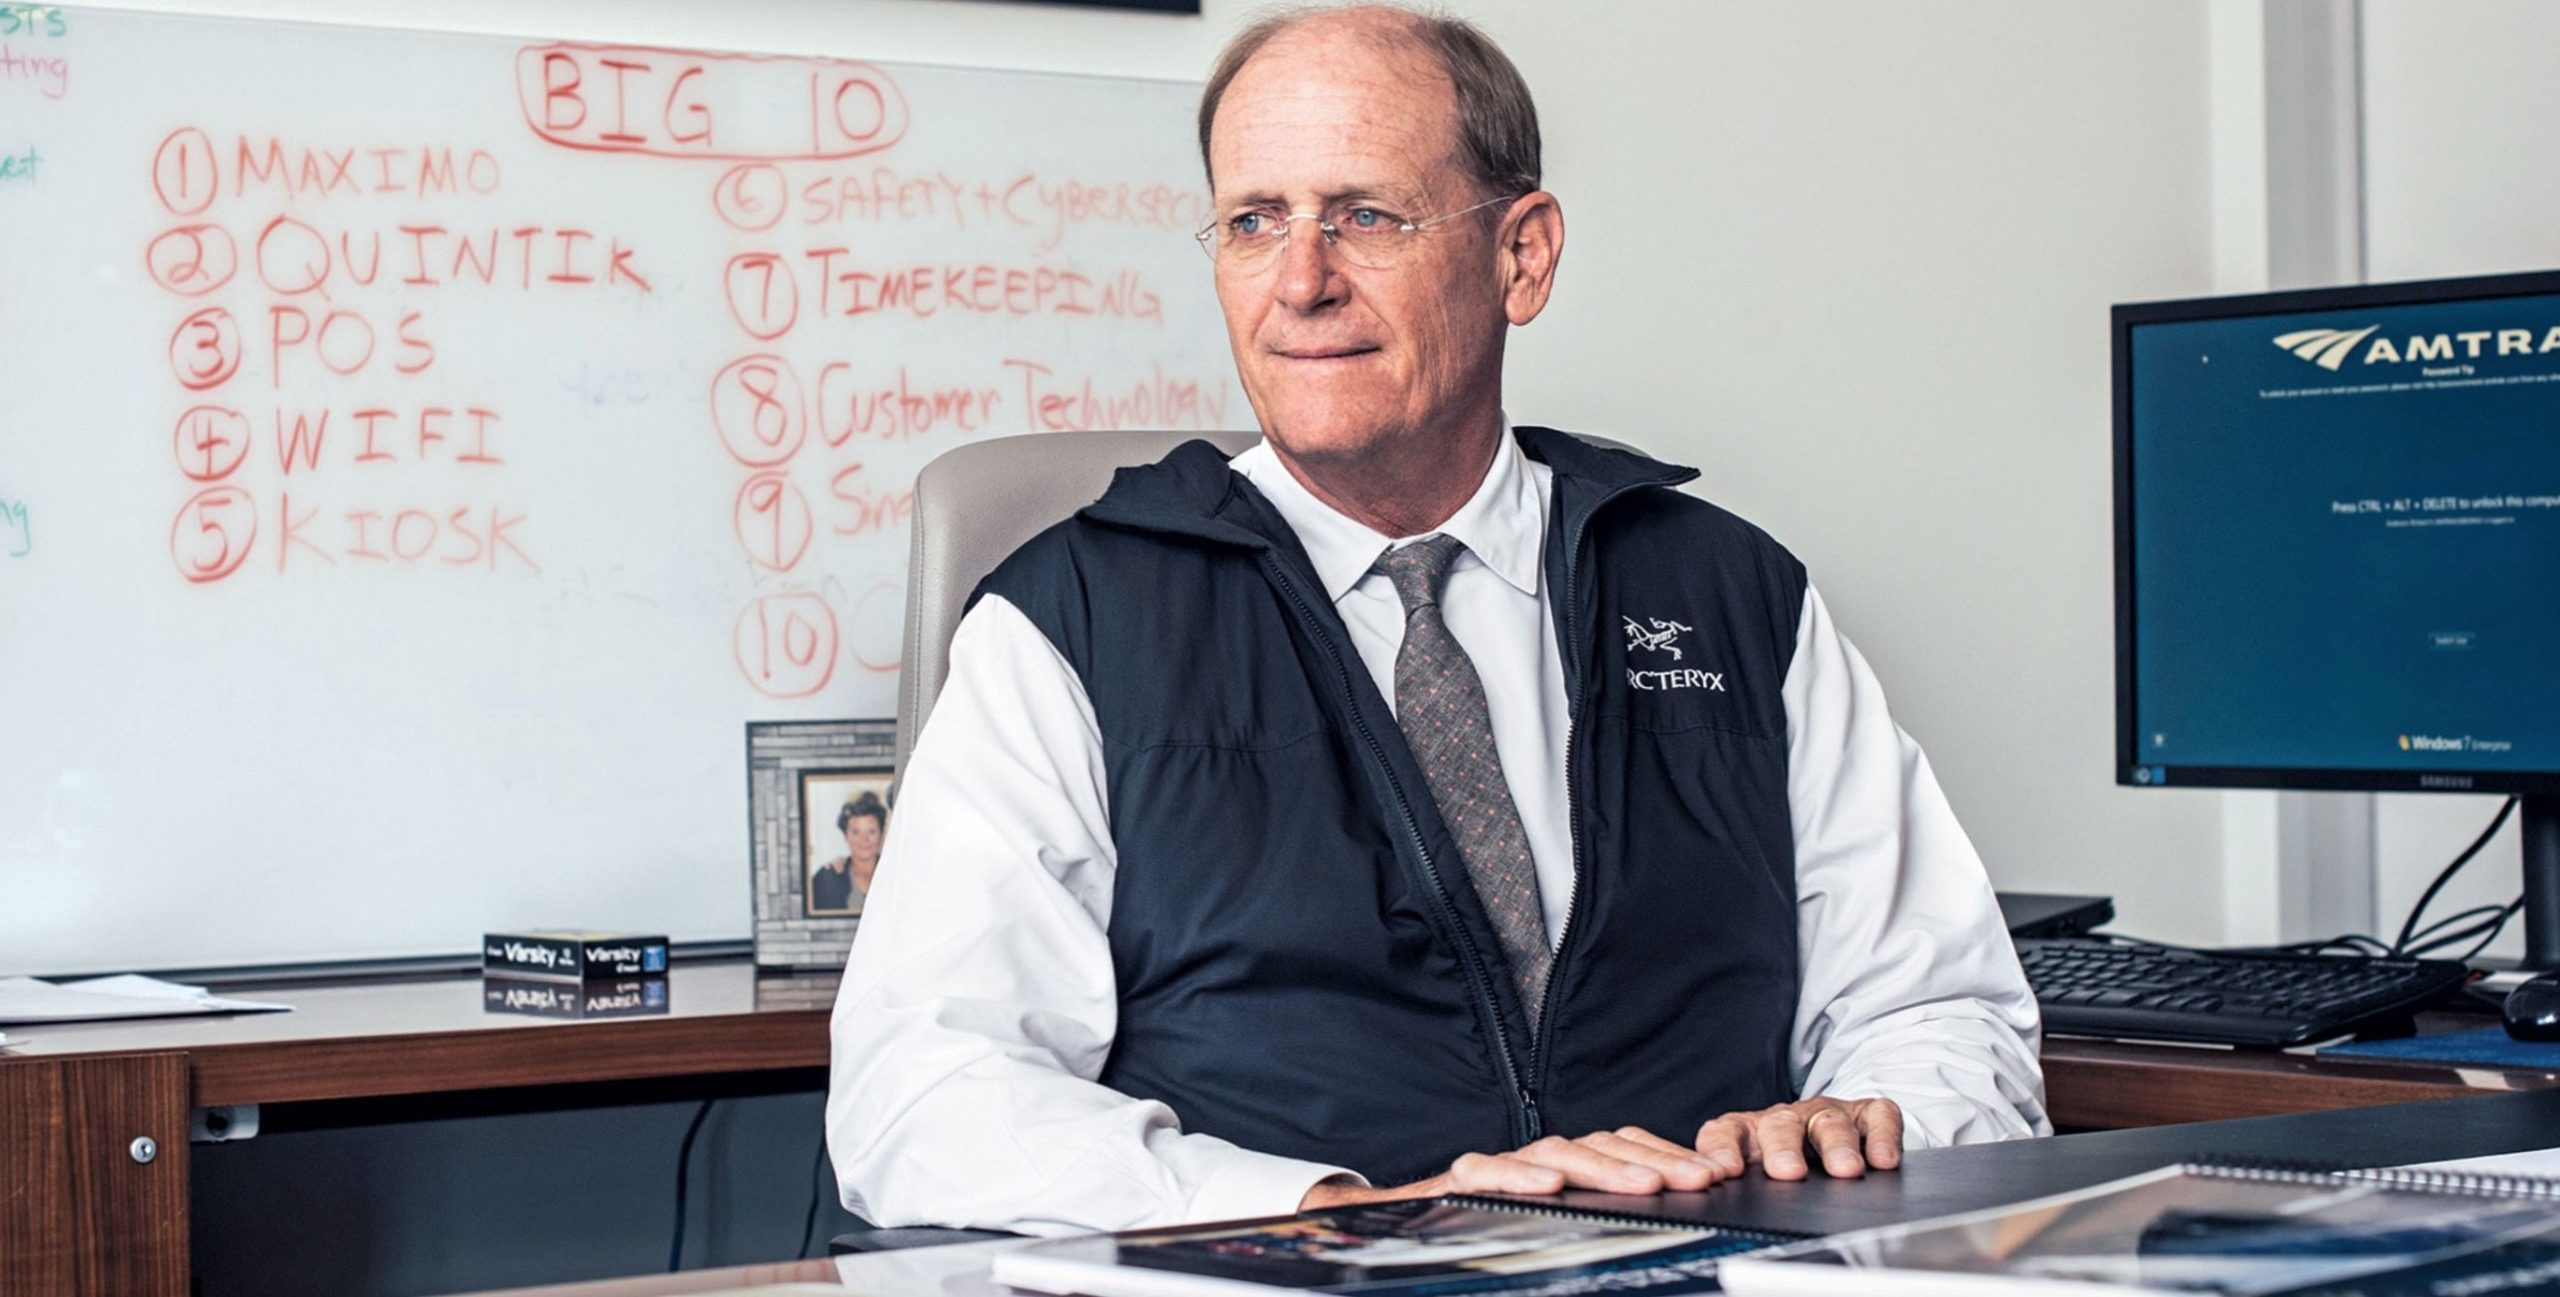 The CEO Of Amtrak Has A Plan For Profitability, And You Won't Like It